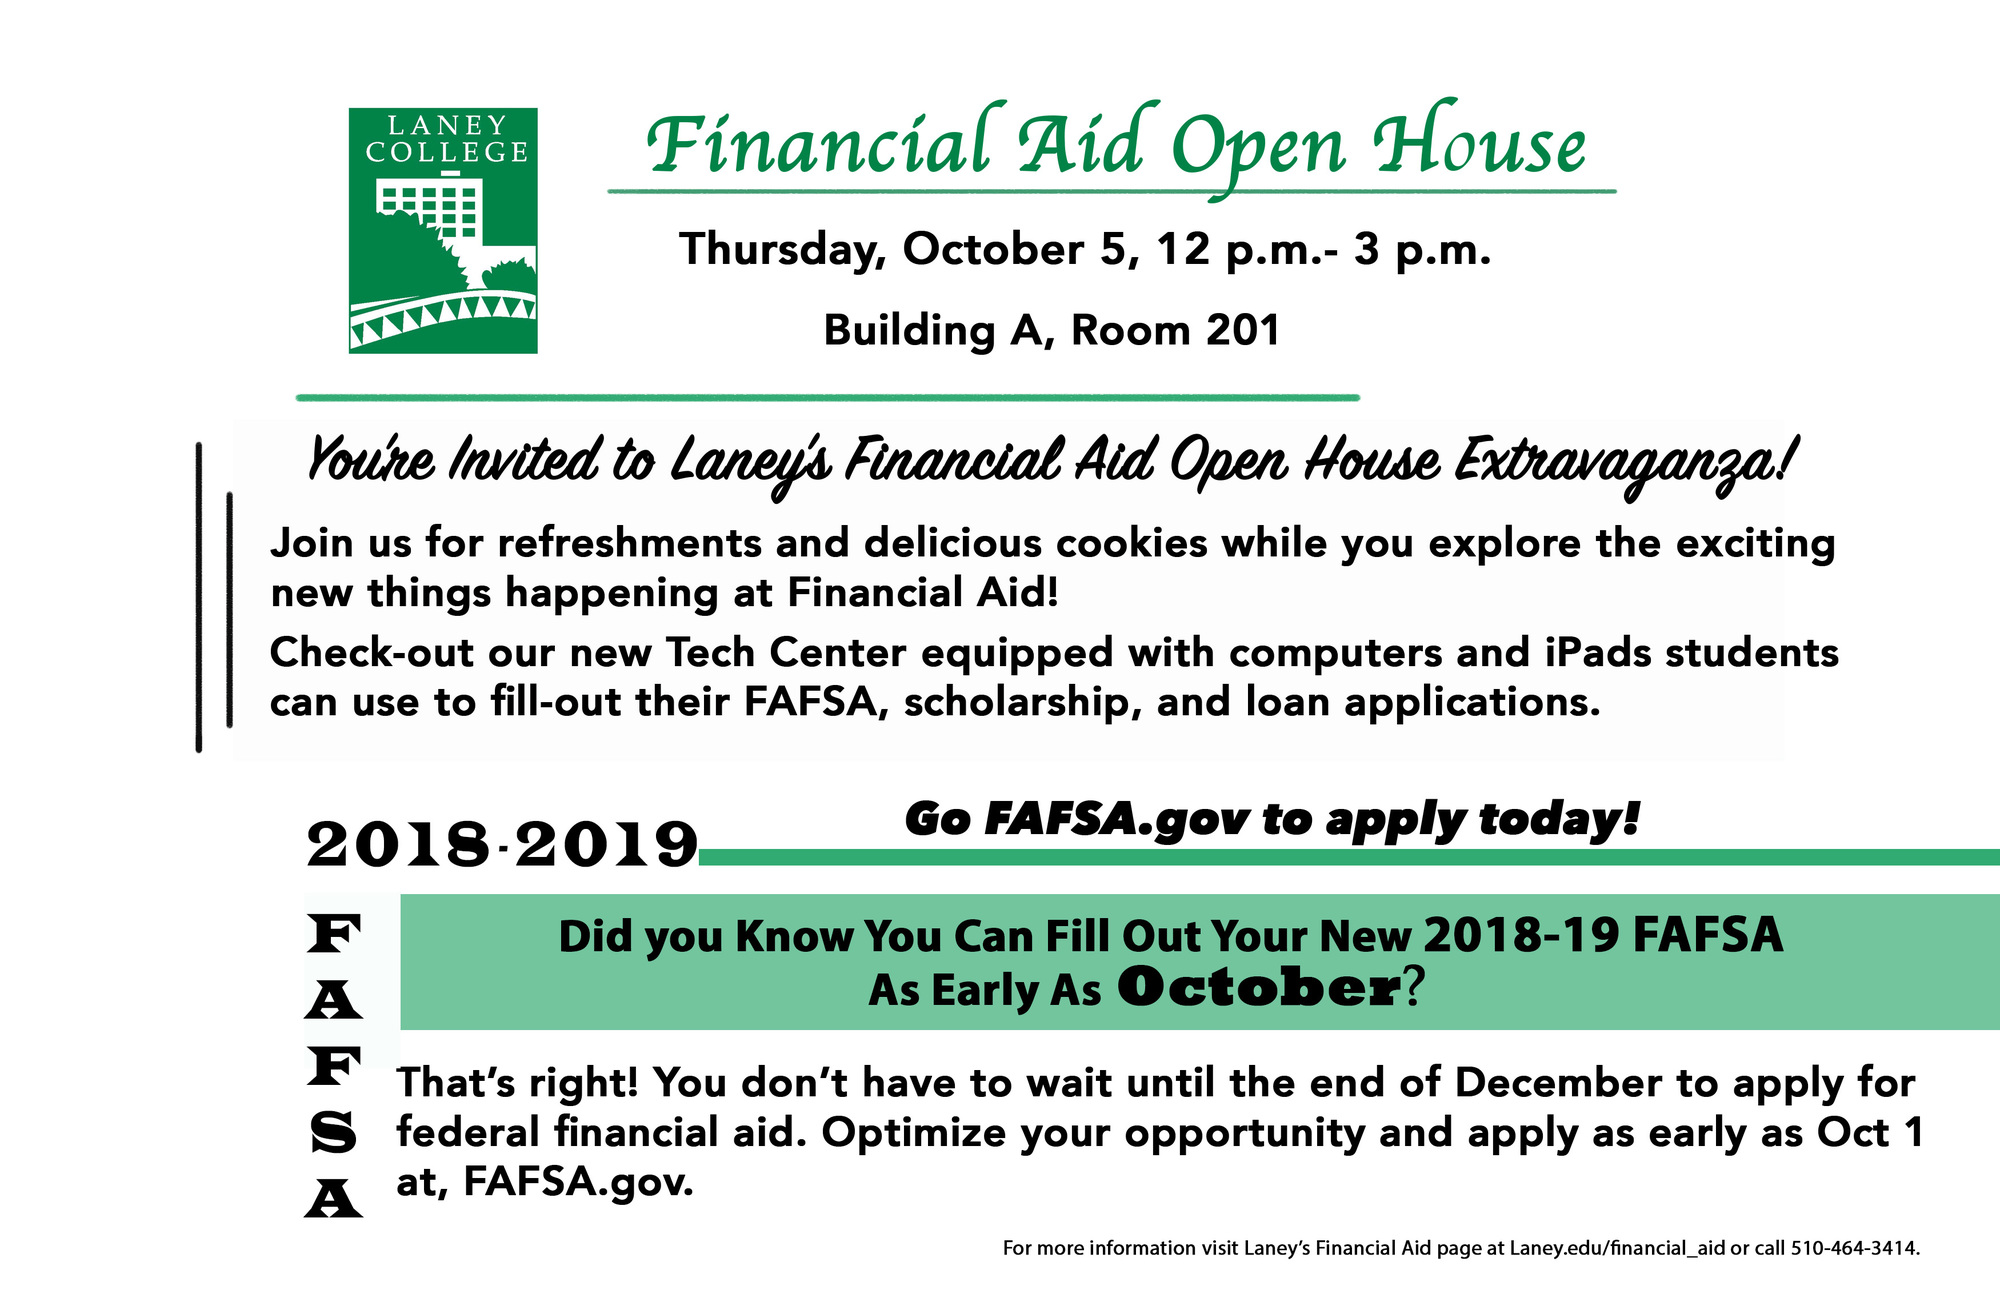 Financial Aid Open House